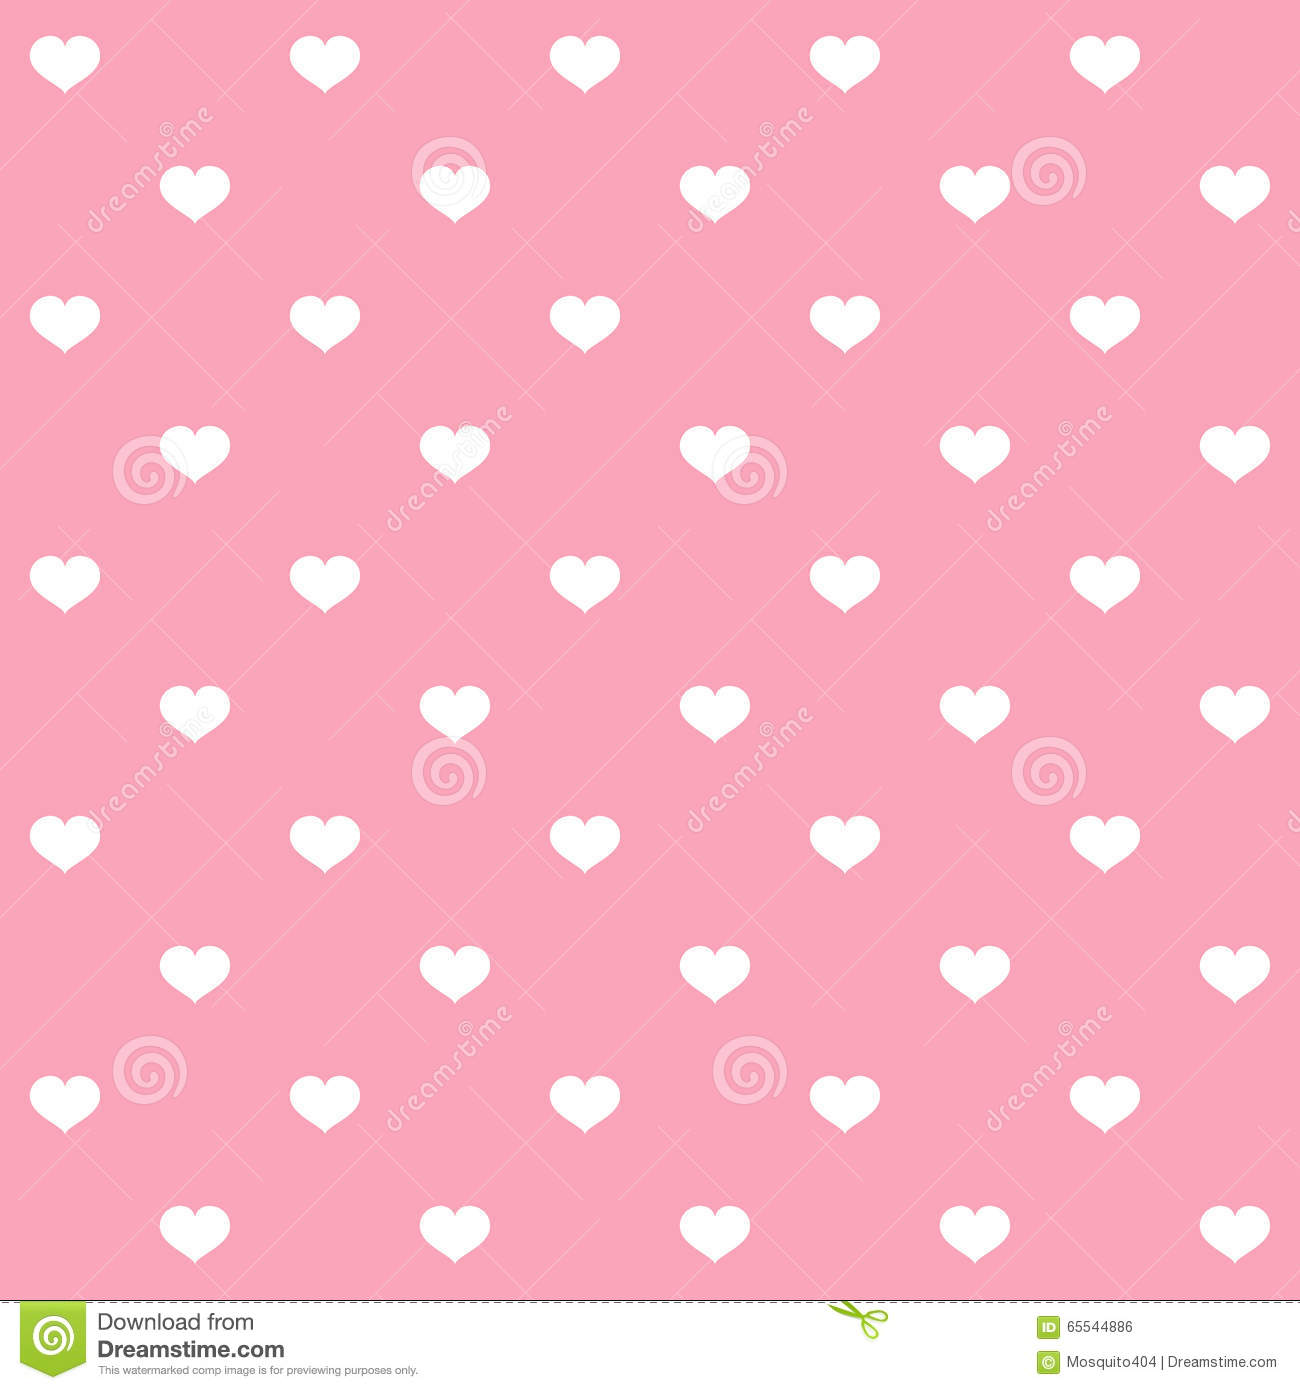 White Polka Dots Hearts On Pink Background Stock Vector